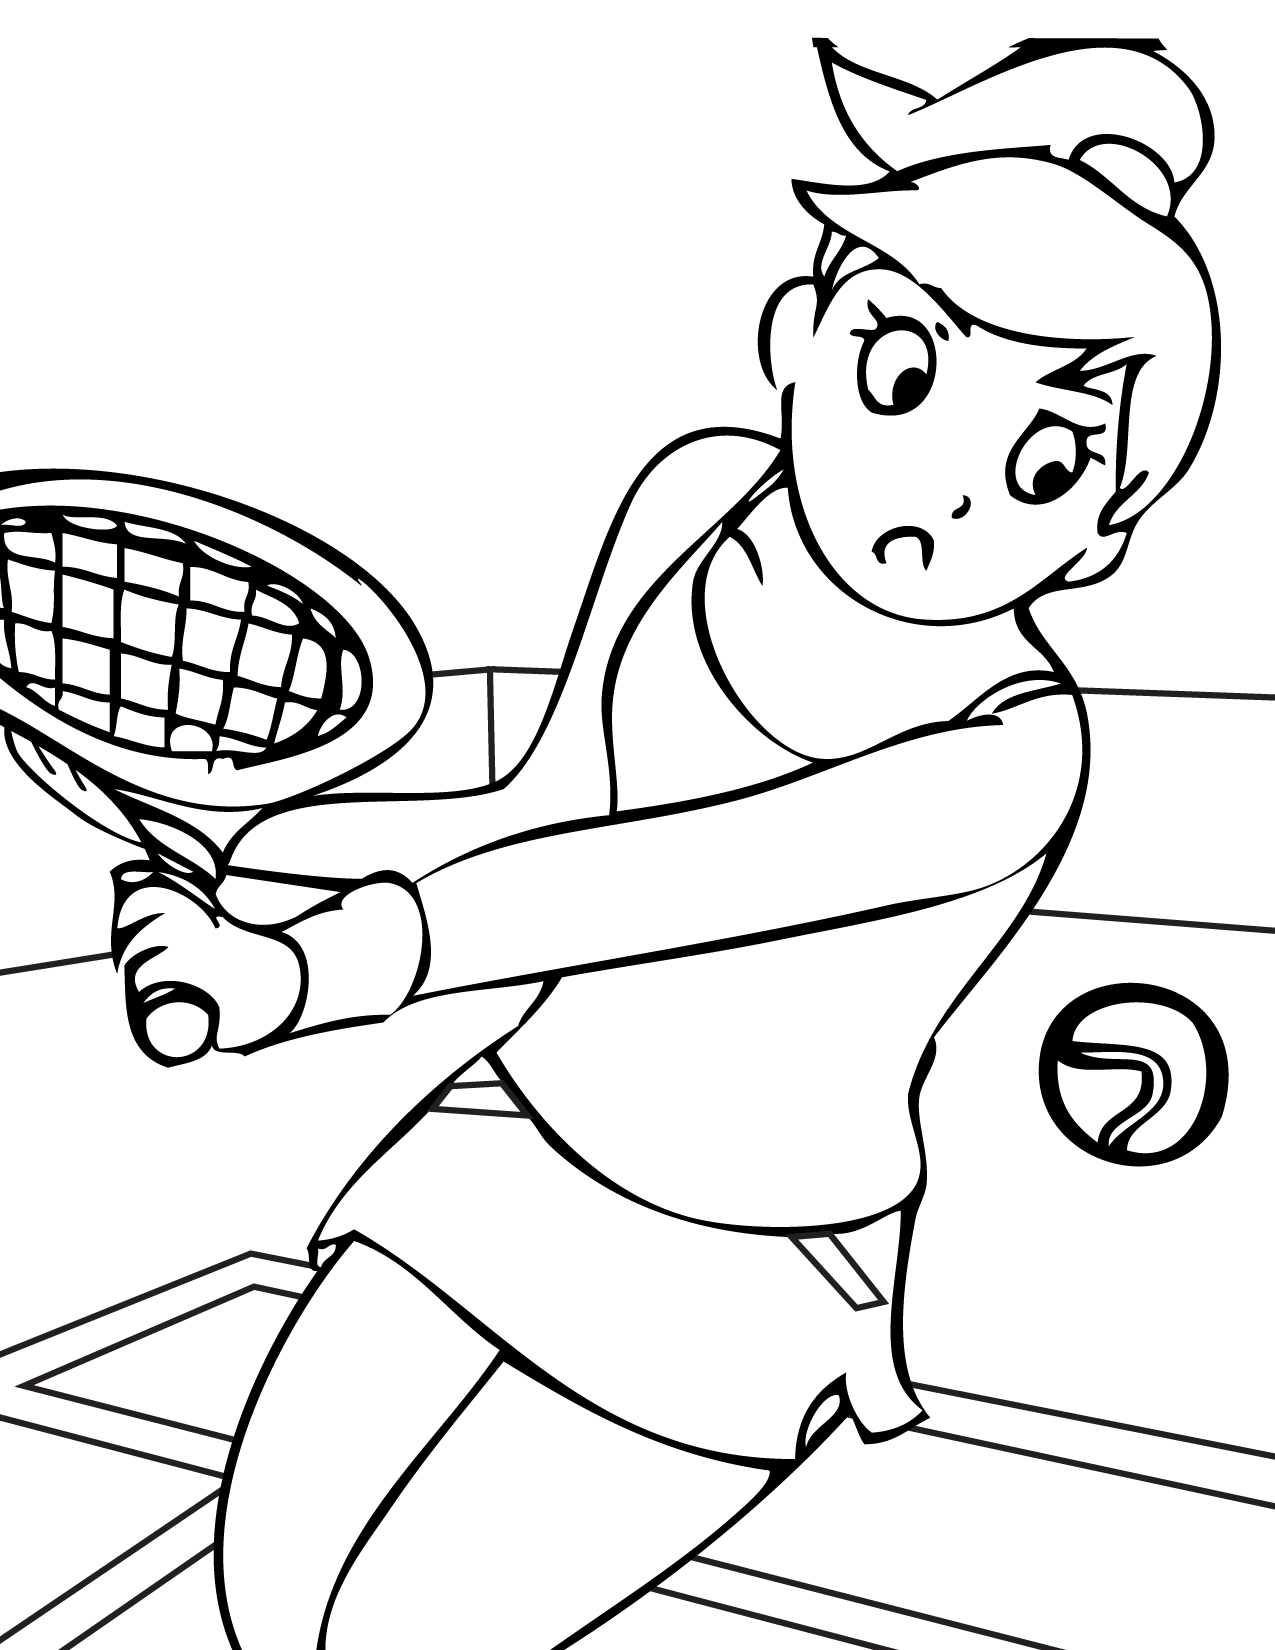 1275x1650 Sports Girl Playing Tennis Free Coloring Page Kids, Sports